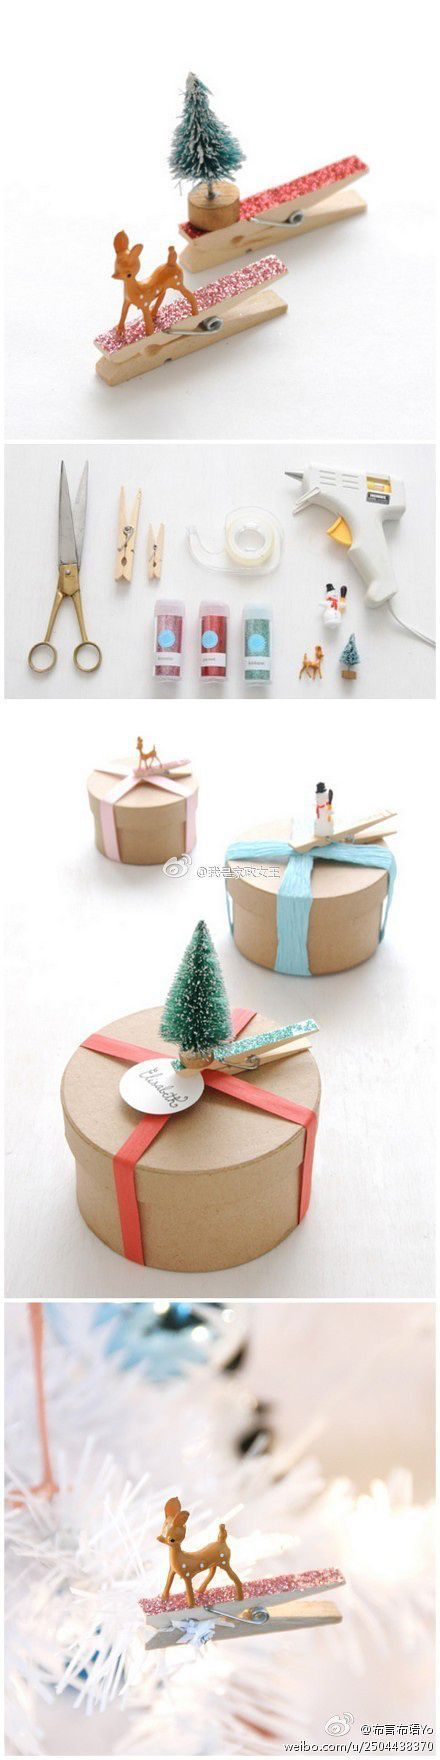 DIY Glittered Clothespin and Miniature Ornaments Gift Toppers - The BEST DIY Gif...